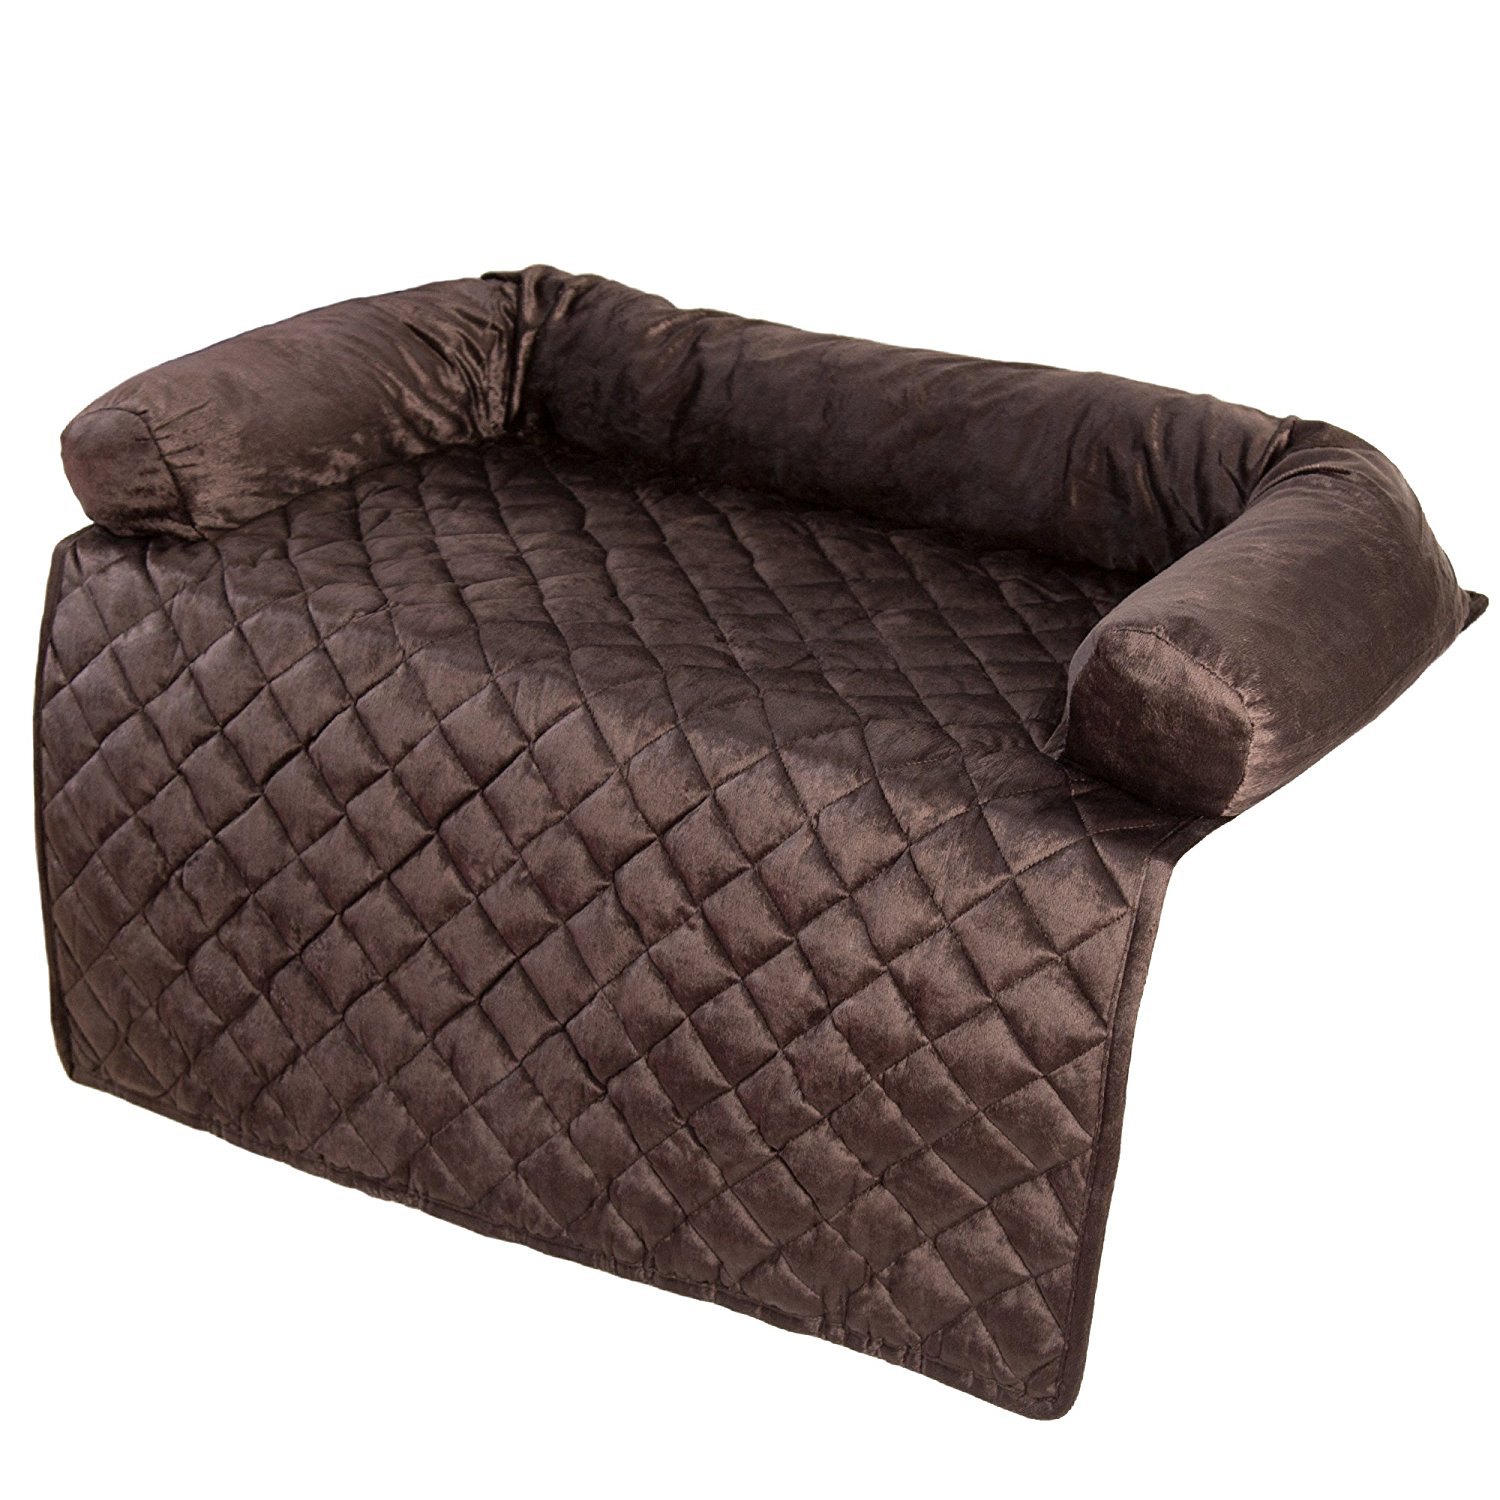 clean leather sofa with damp cloth catnapper reclining sofas furniture protector pet cover bolster brown 35 x care